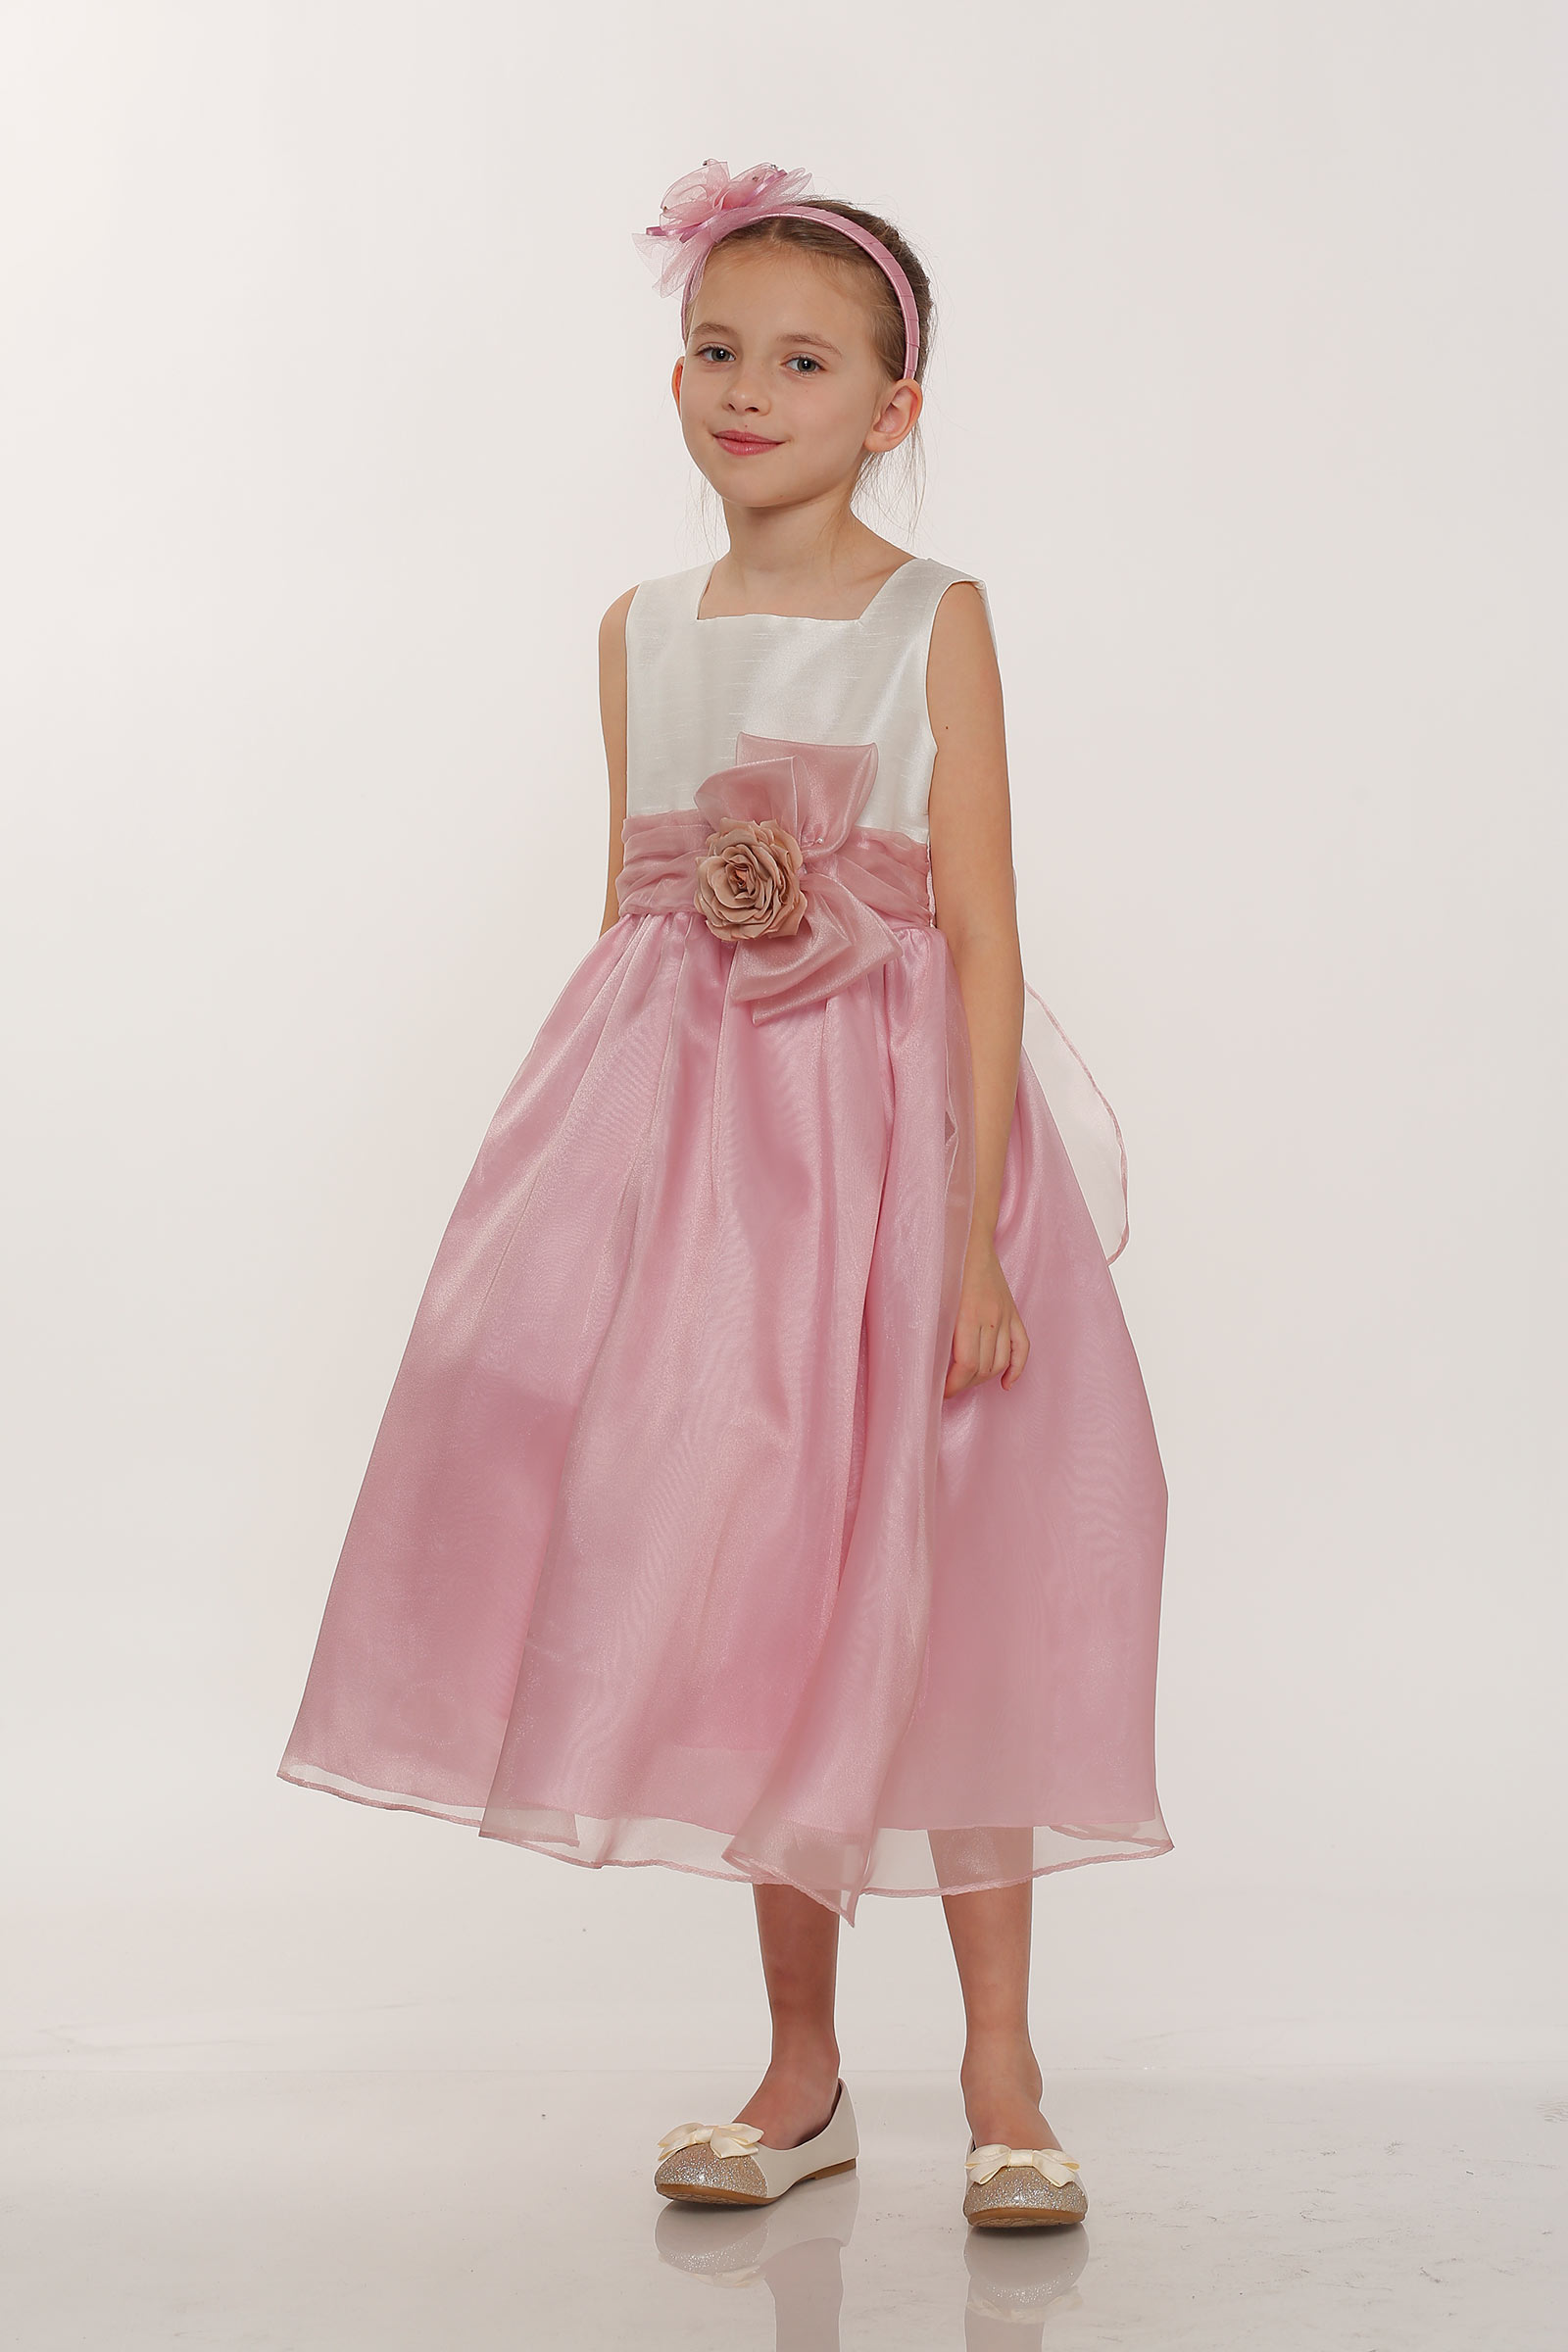 Cc 1225ivrs Girls Dress Style 1225 Ivory Rose Organza